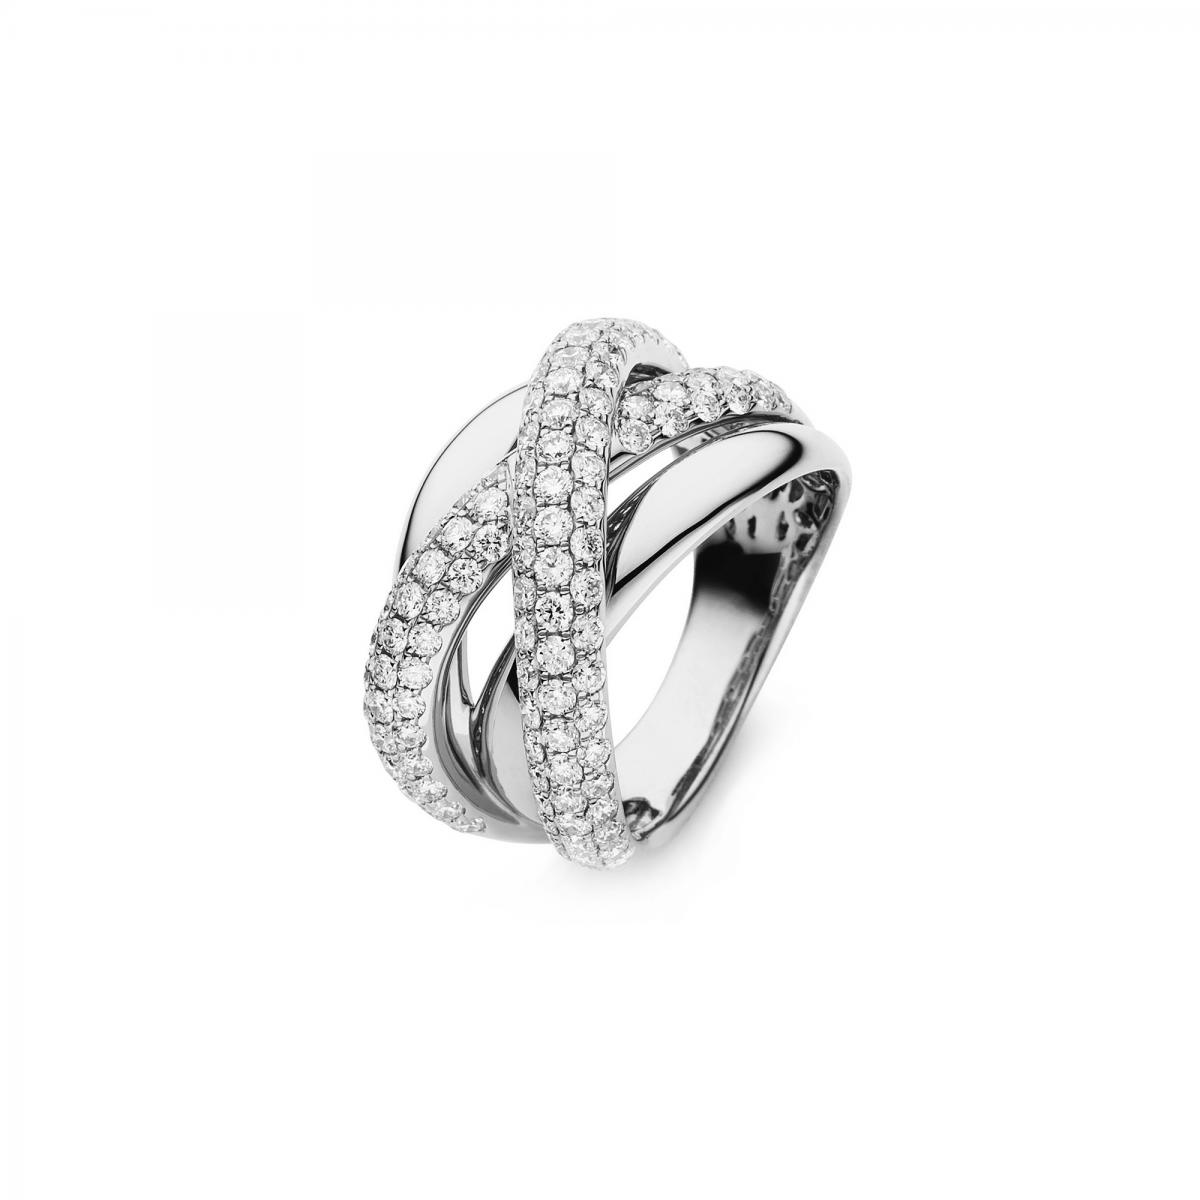 Ring 18 ct white gold with 119 brilliants ca. 1,87 ct, size 53